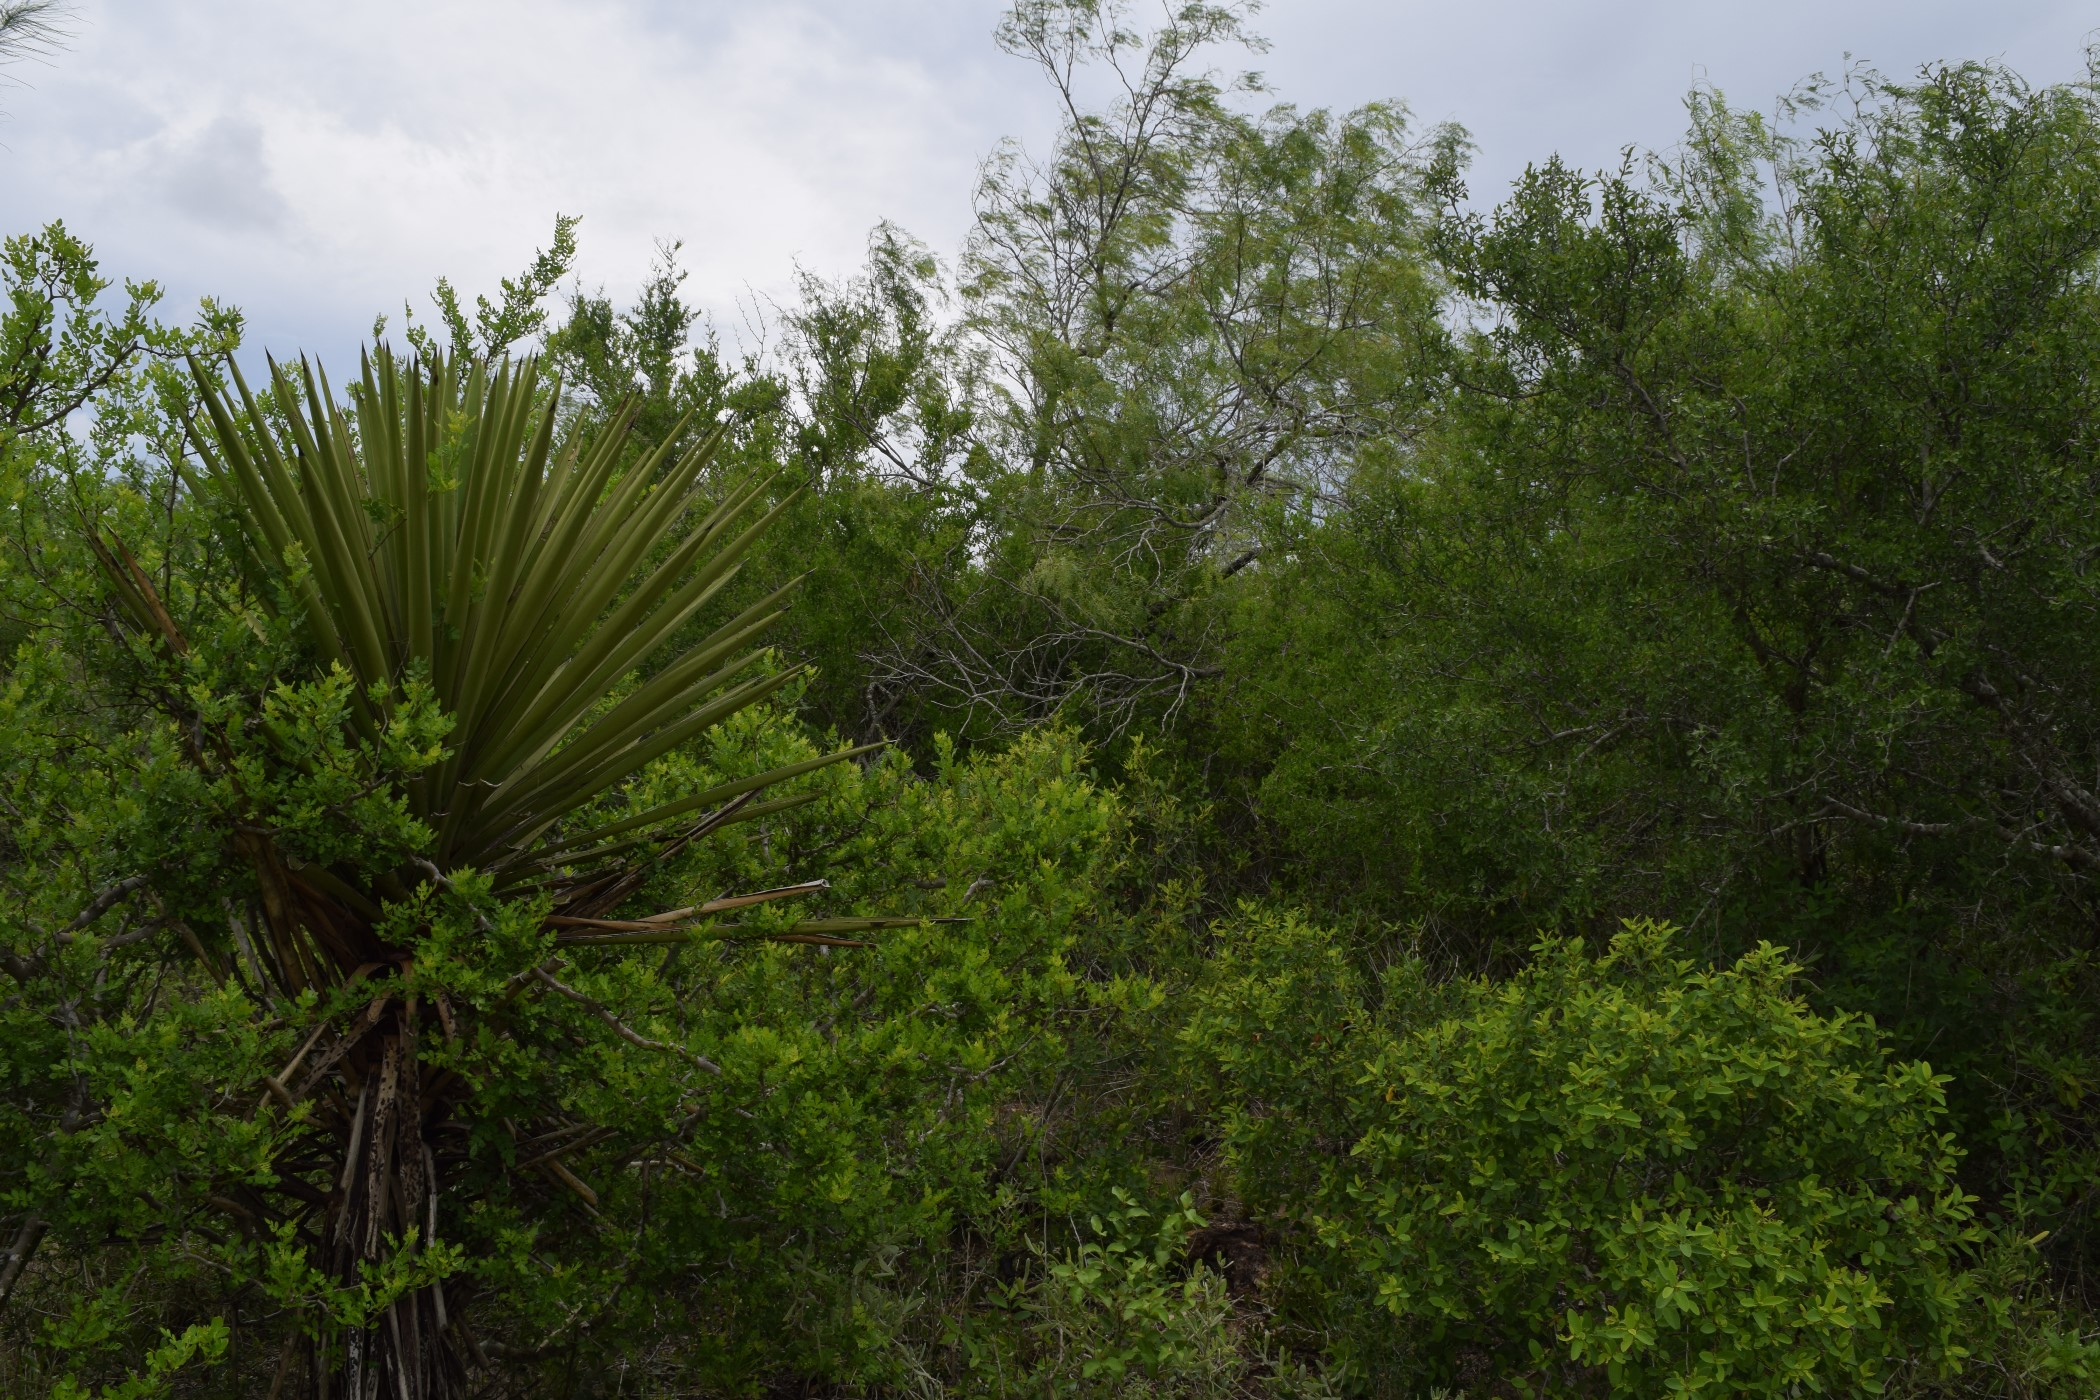 Dense, thorny plants found in chaparral ecosystem